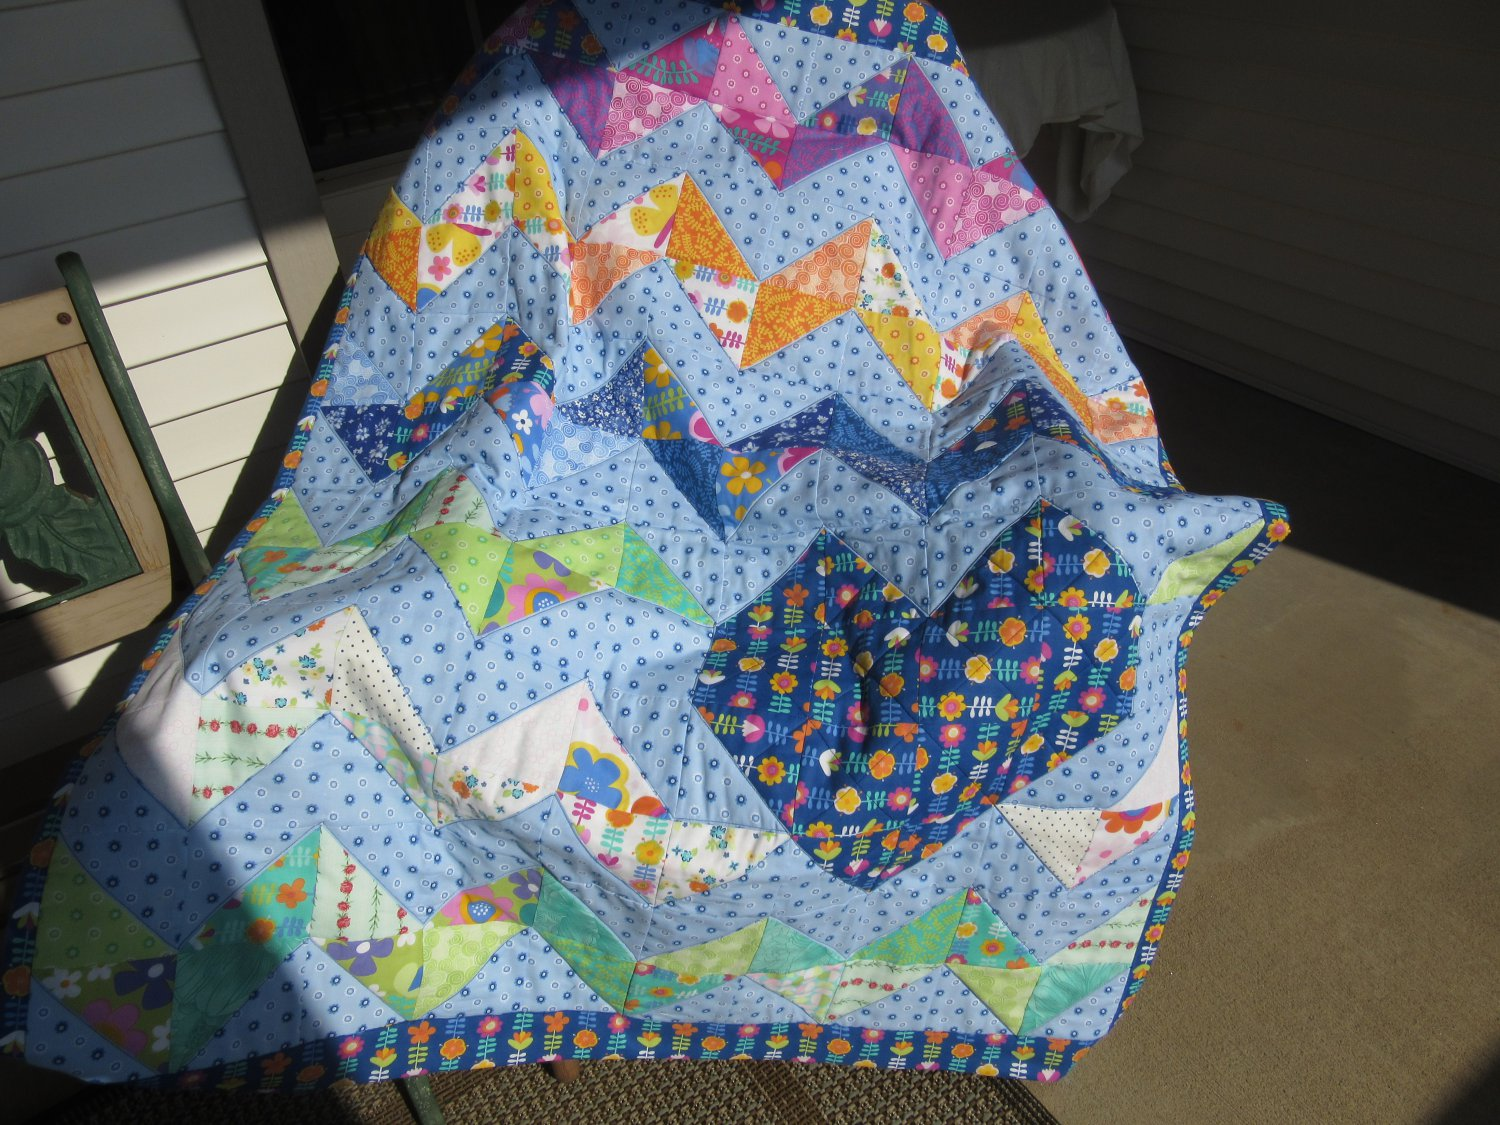 Chevron Zig Zag and Heart Pieced Cotton Patchwork Lap Quilt in Icy Blue